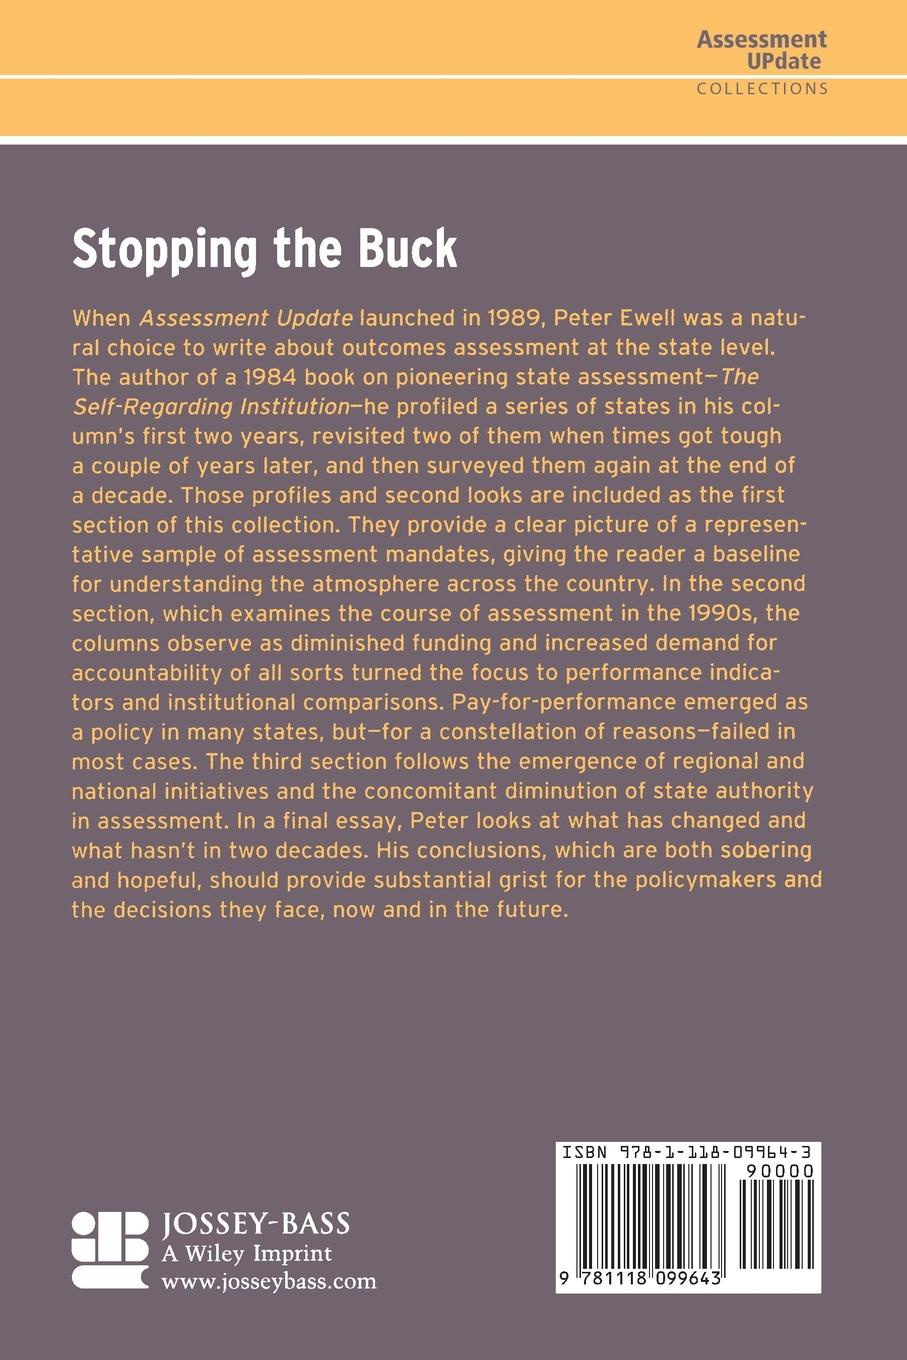 Au (Assessment Update), Ewell Stopping the Buck. Selections from States